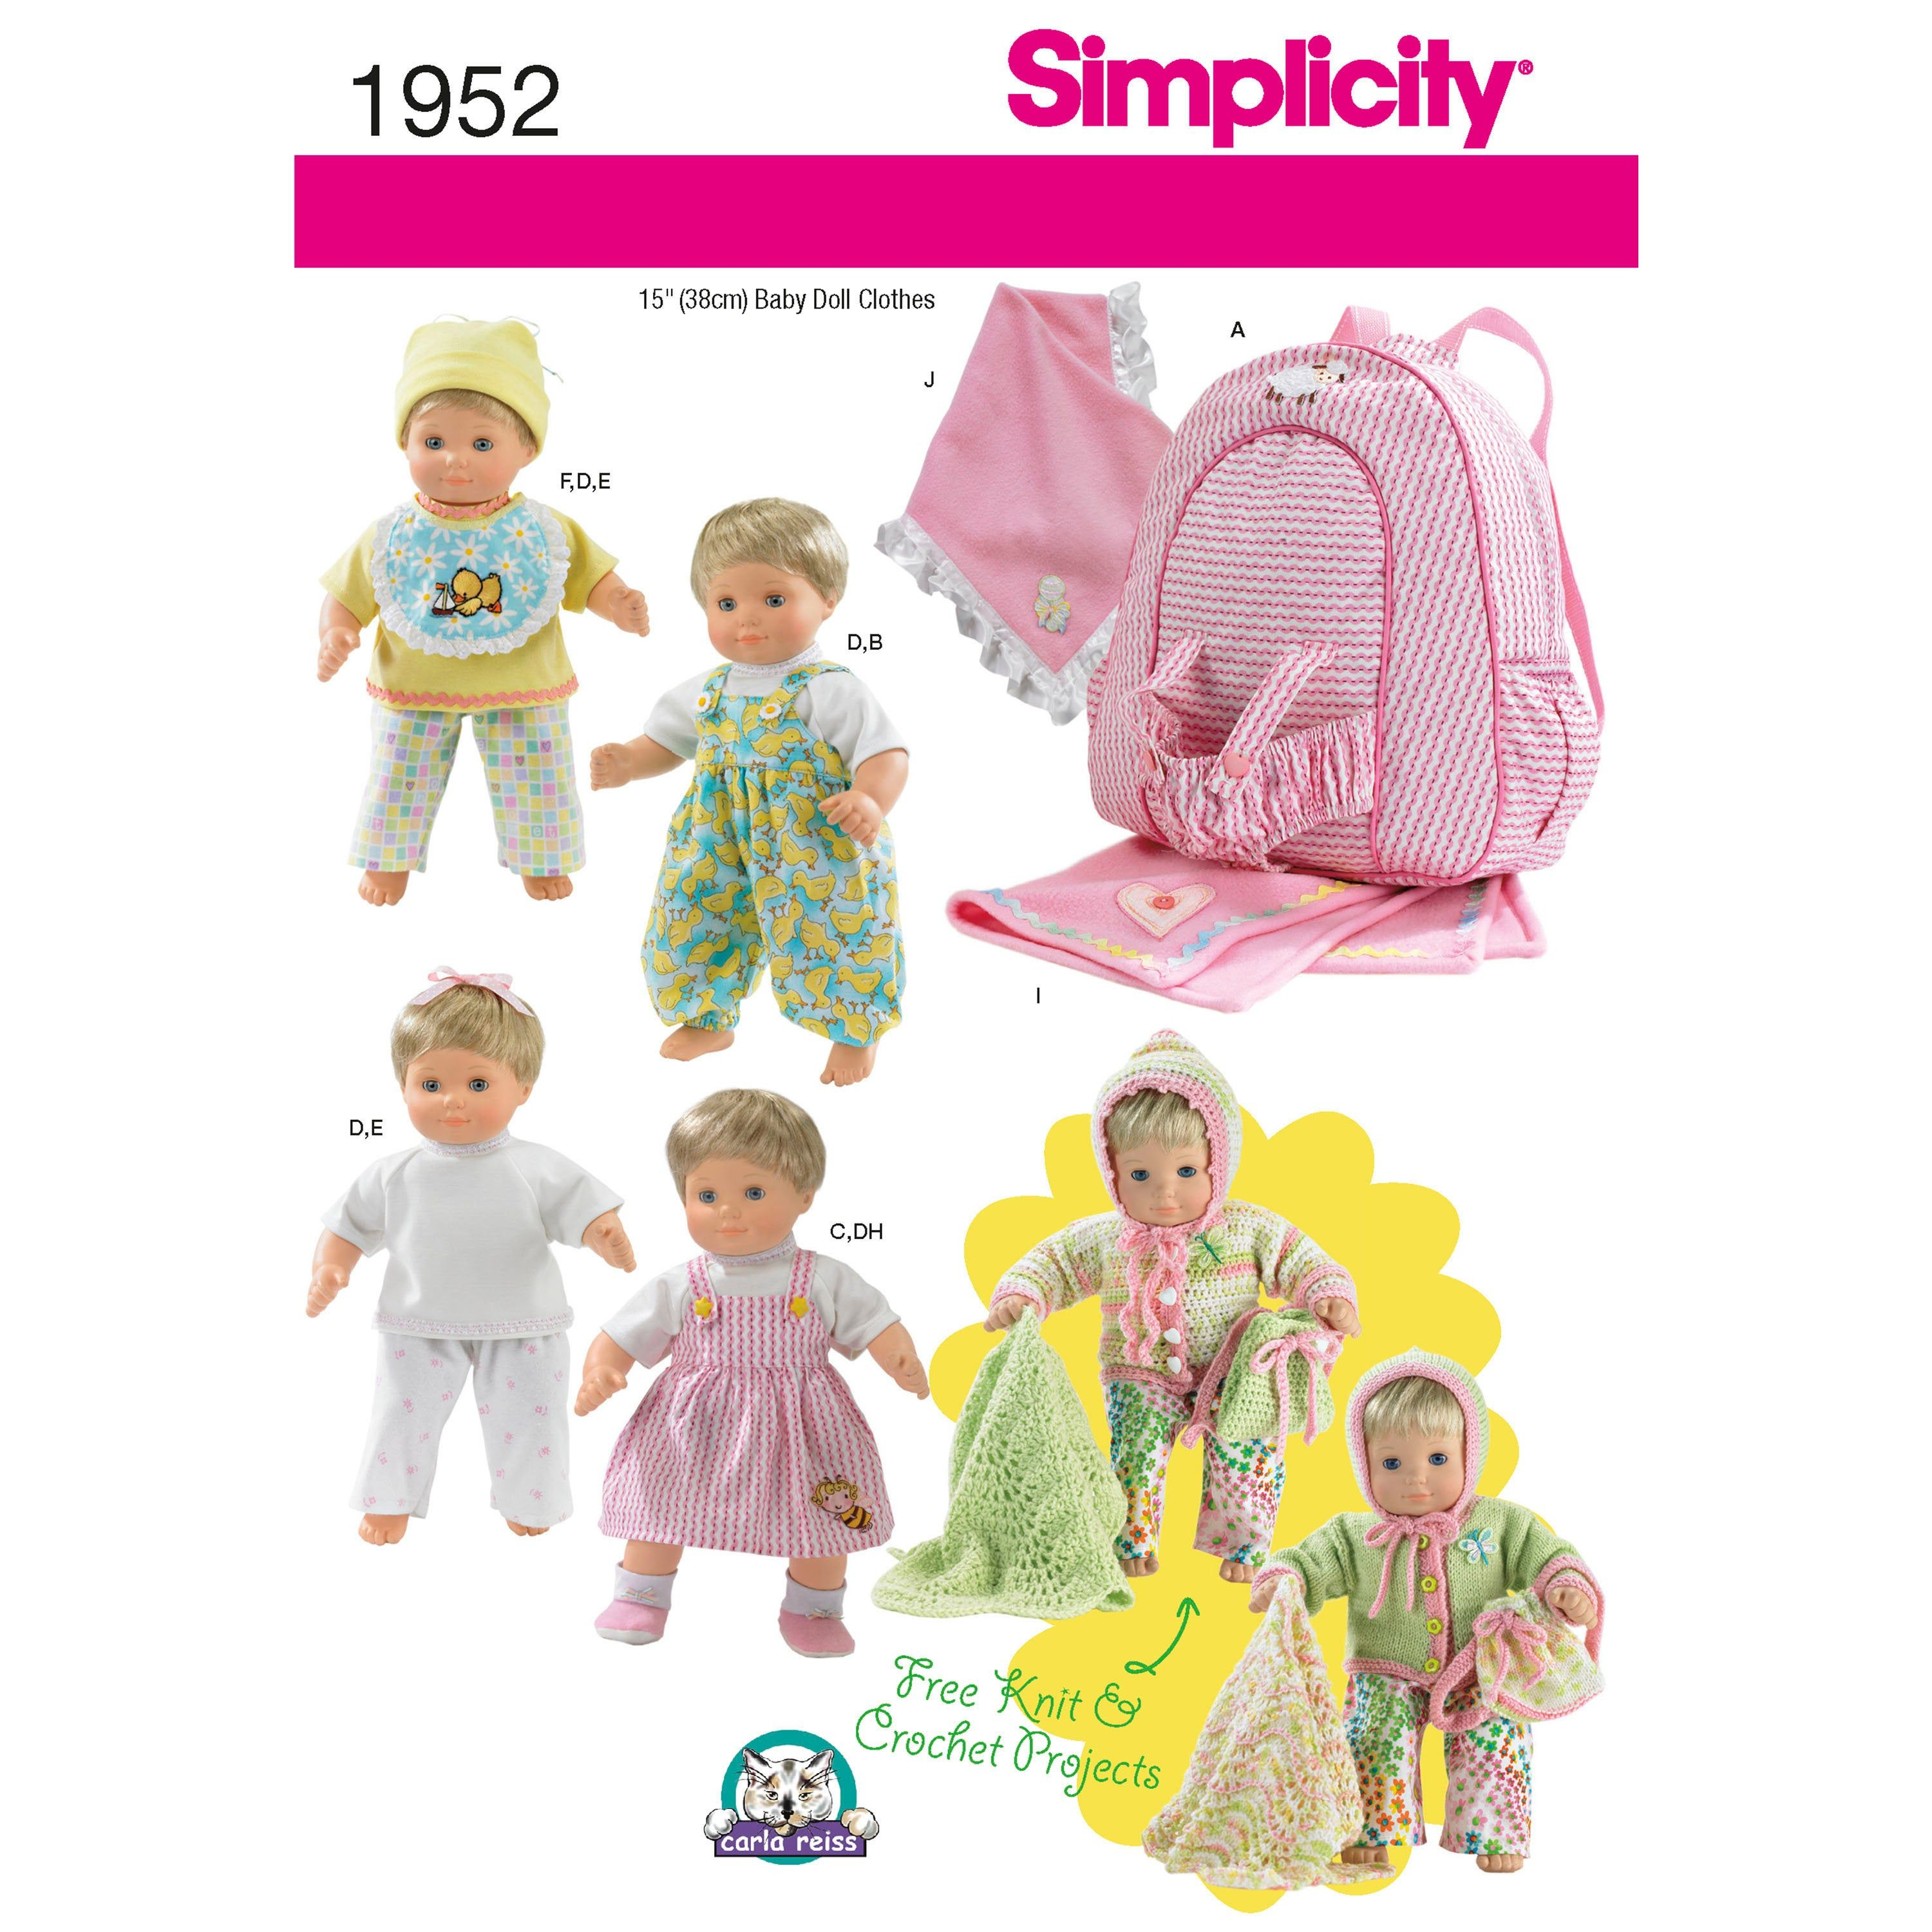 Sewing Pattern 15 Inch Baby Doll Clothes Pattern 15 Inch Doll Baby Clothes Pattern Doll Carrier Pattern Simplicity Sewing Pattern 1952 Baby Doll Clothes Patterns Baby Doll Clothes Bitty Baby Clothes